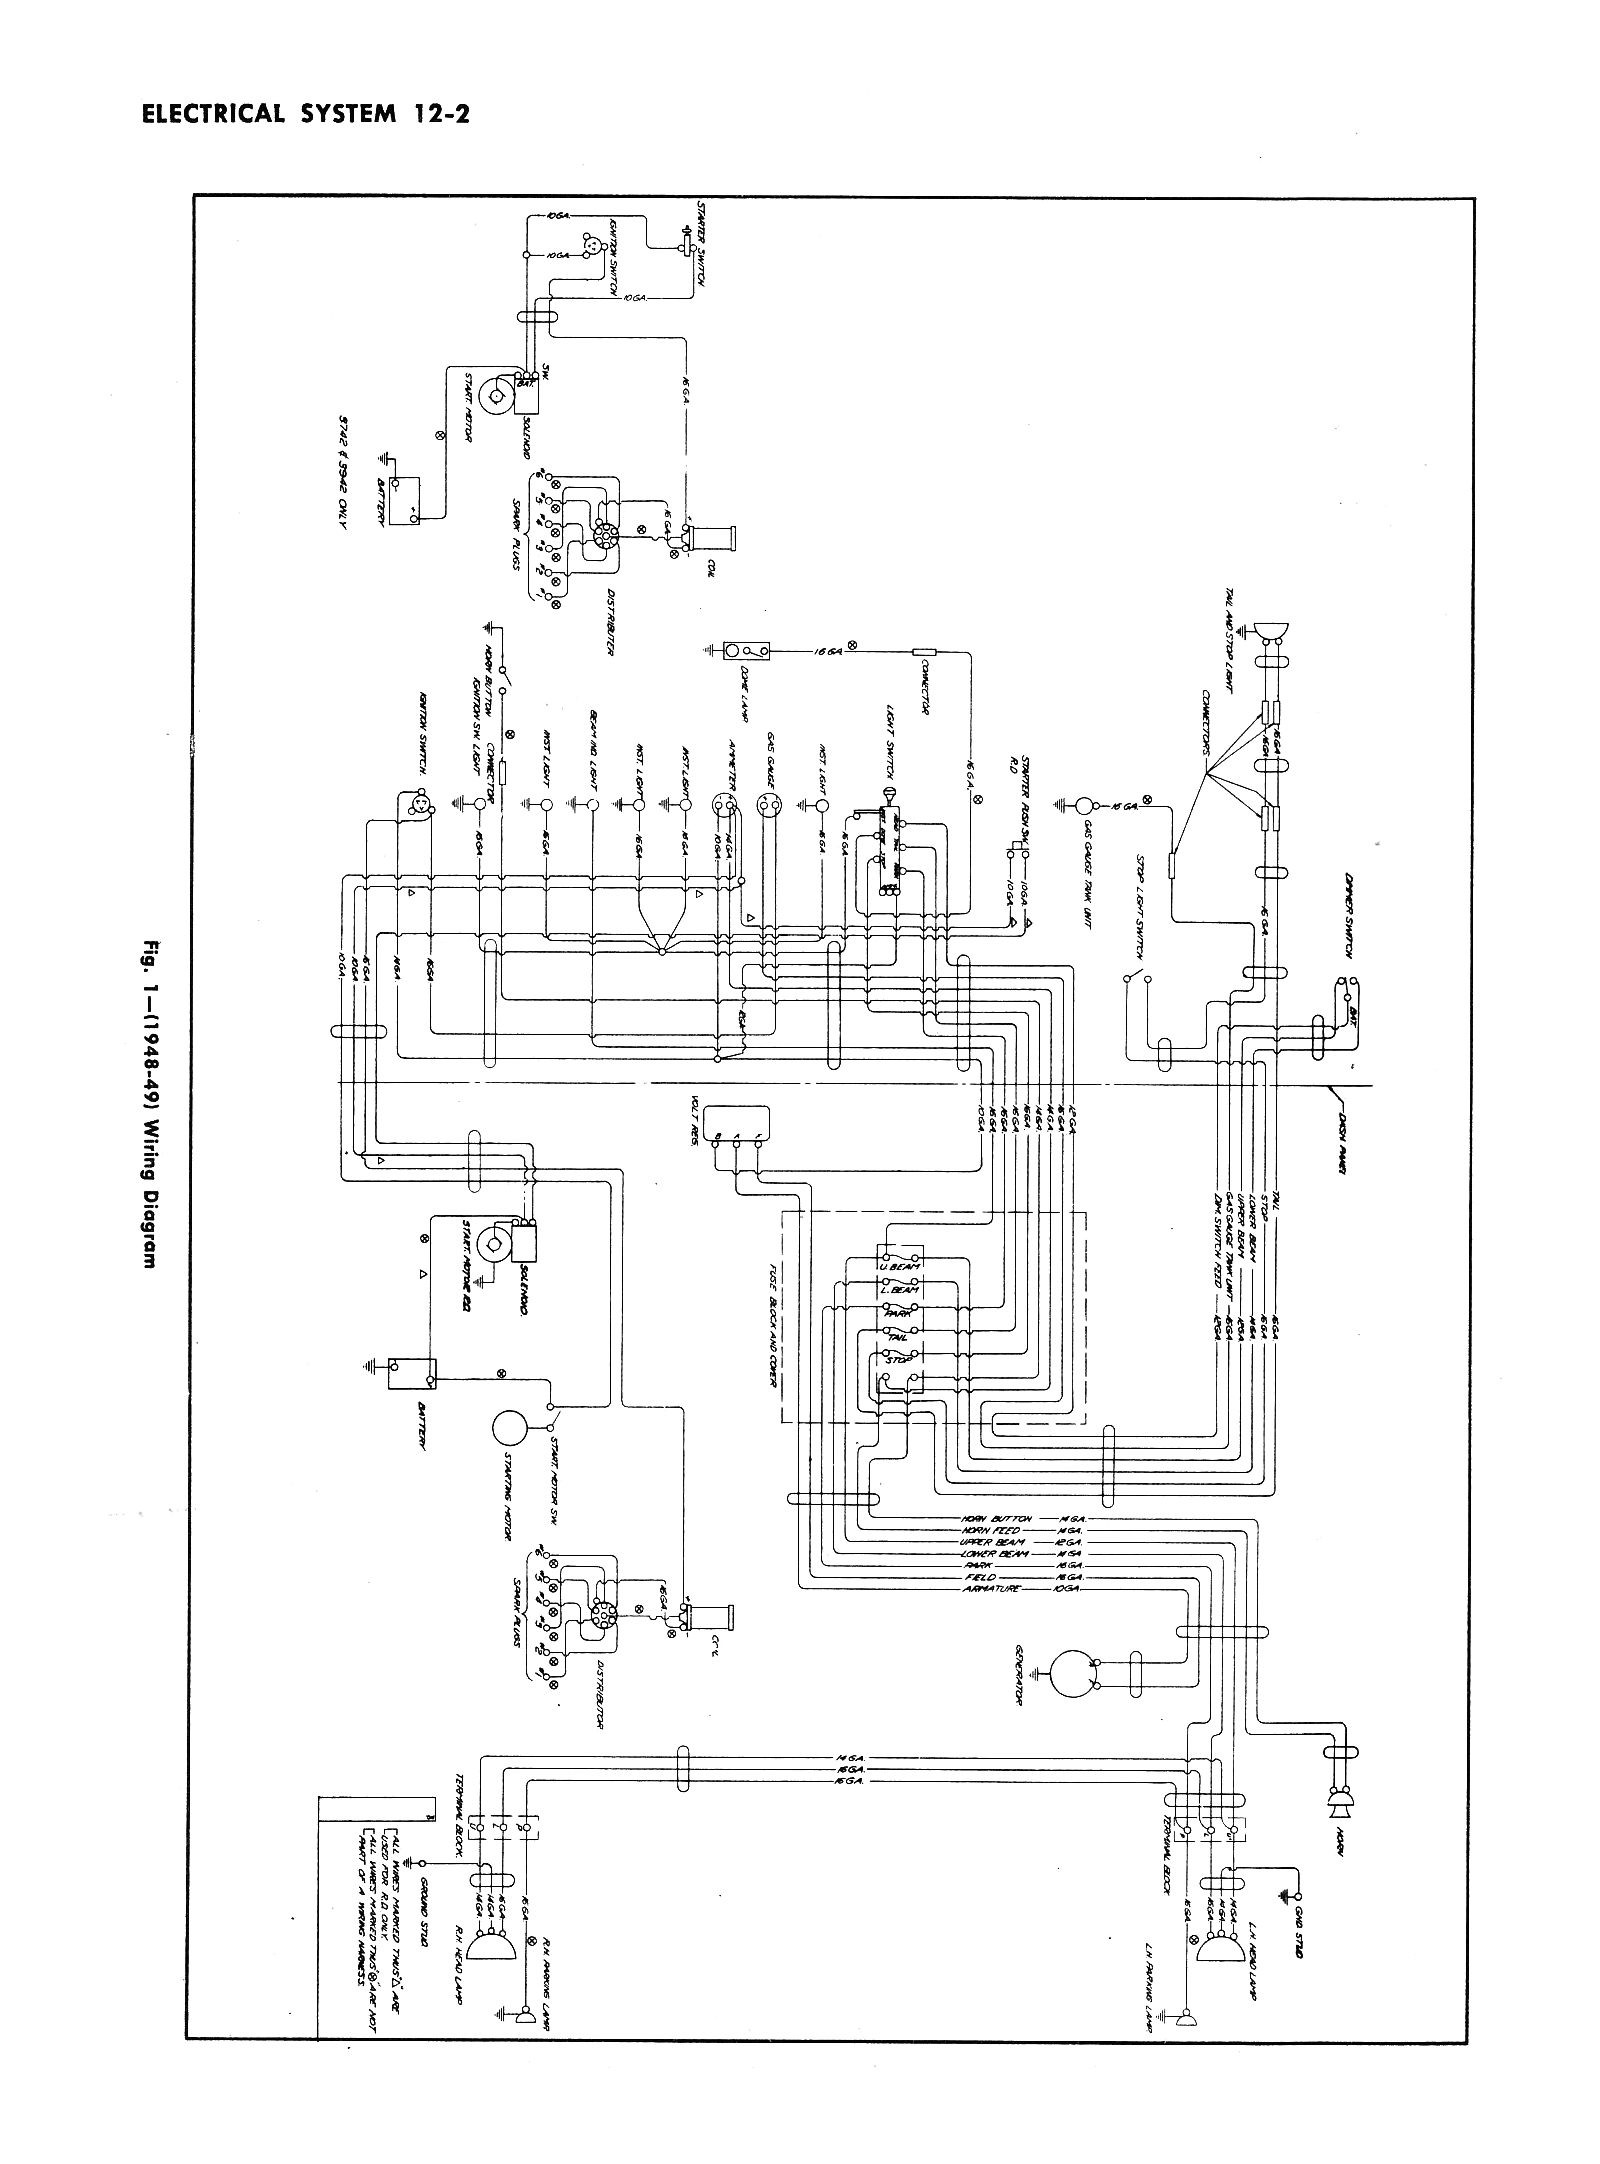 Wiring Diagram 69 Chevy Truck